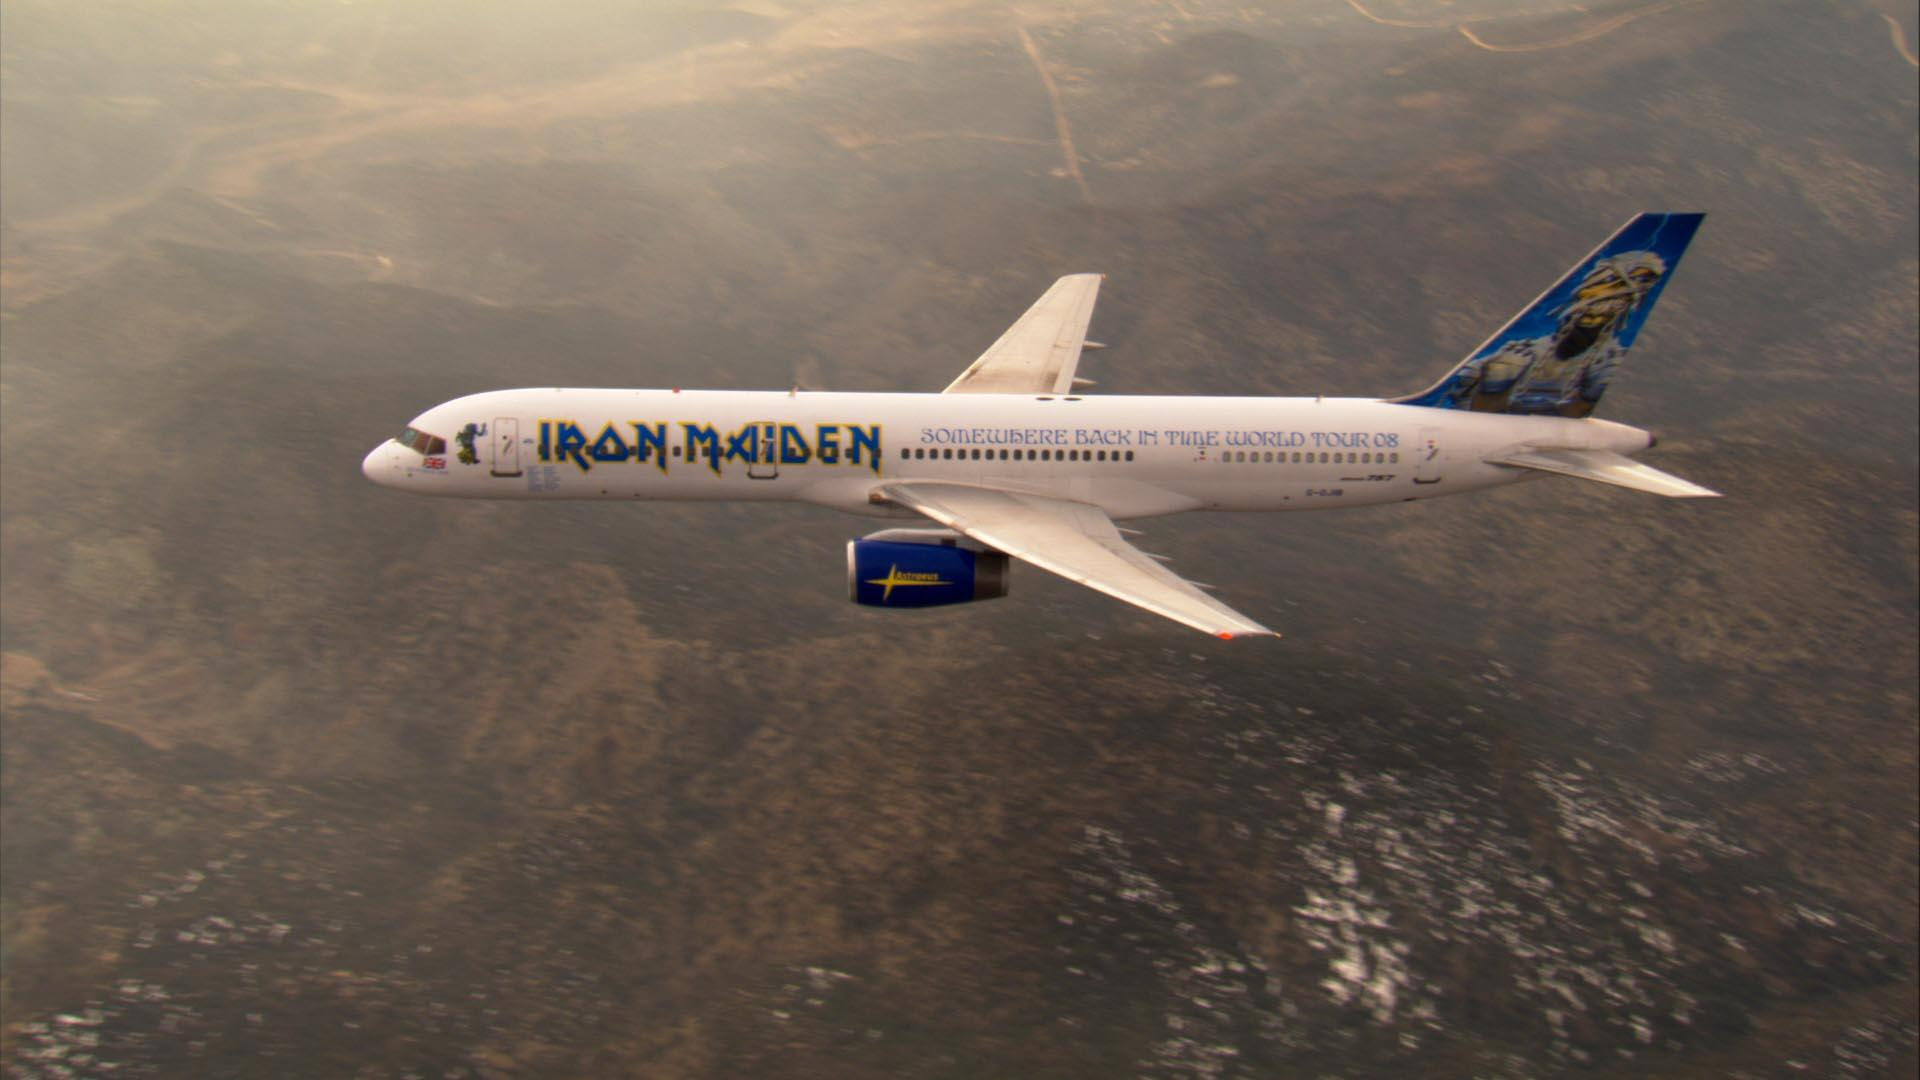 Iron Maiden Flight 666 wallpaper   88743 1920x1080